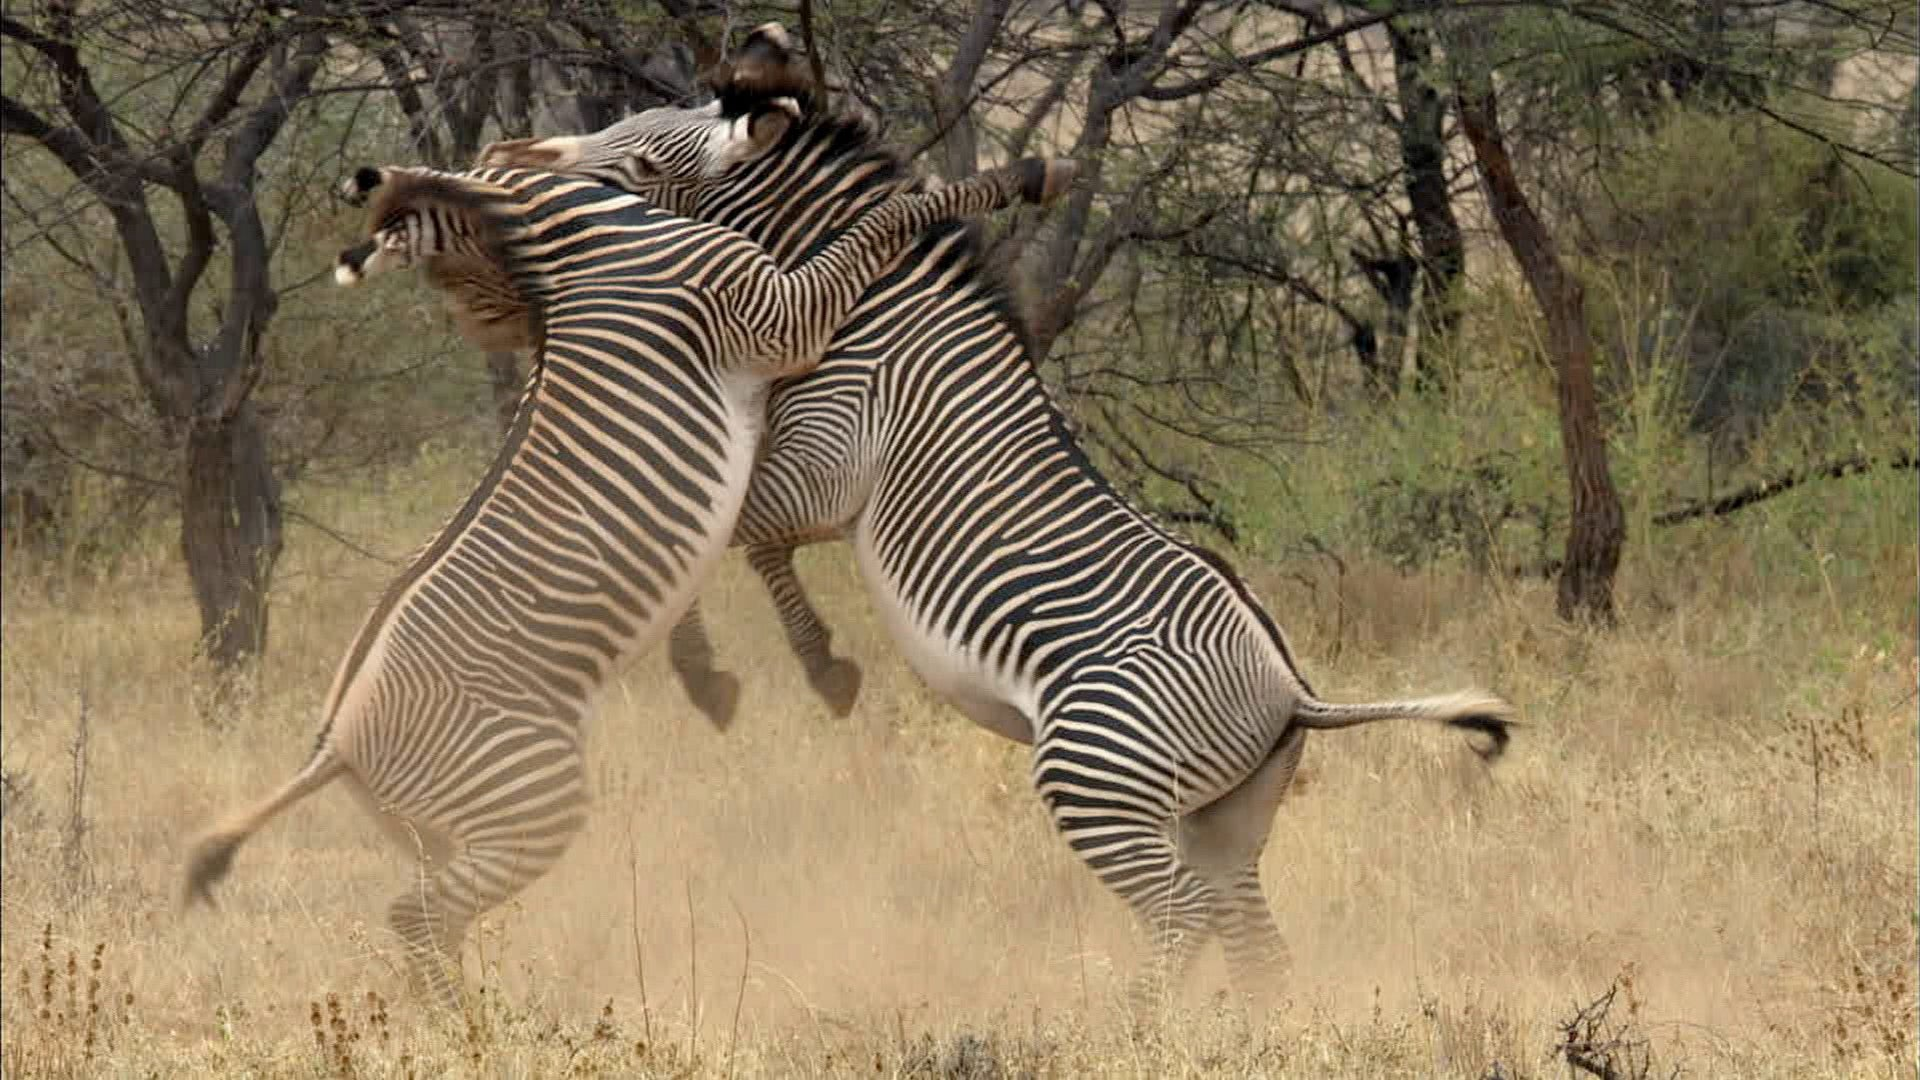 Grevy's zebras in a battle over dominance: Now imagine trying to land on one of them.